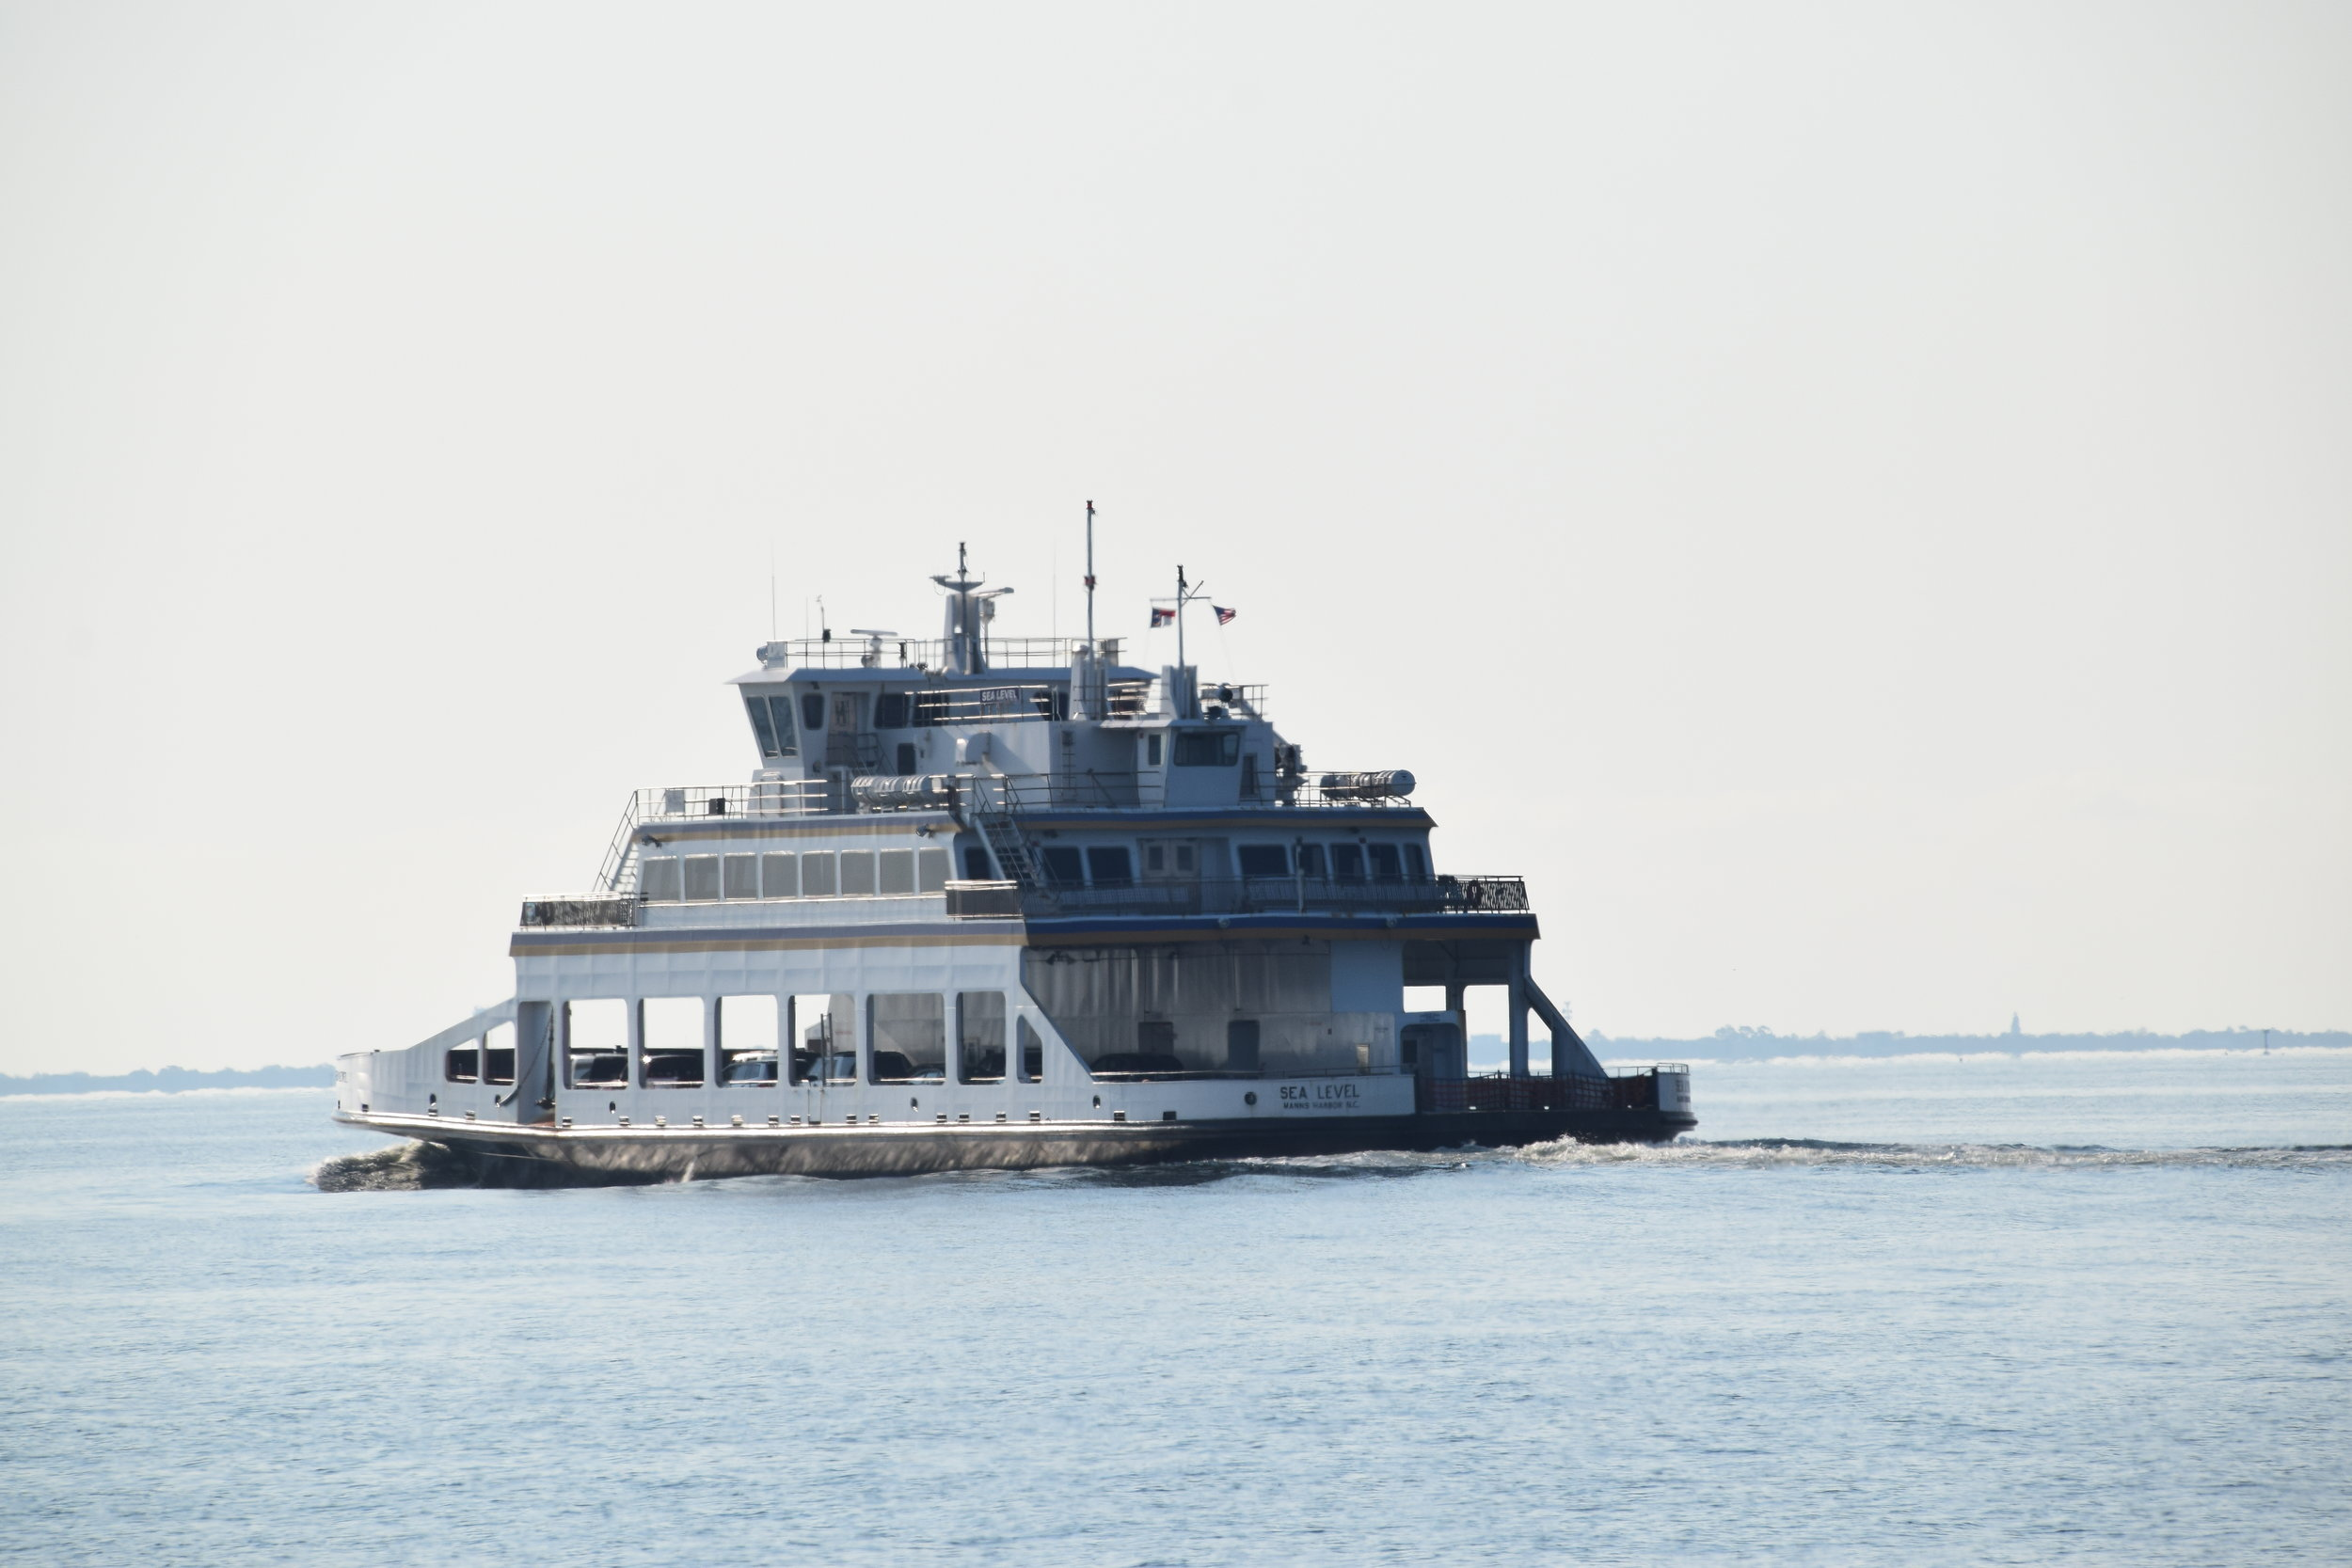 Ocracoke to Cedar Island Ferry